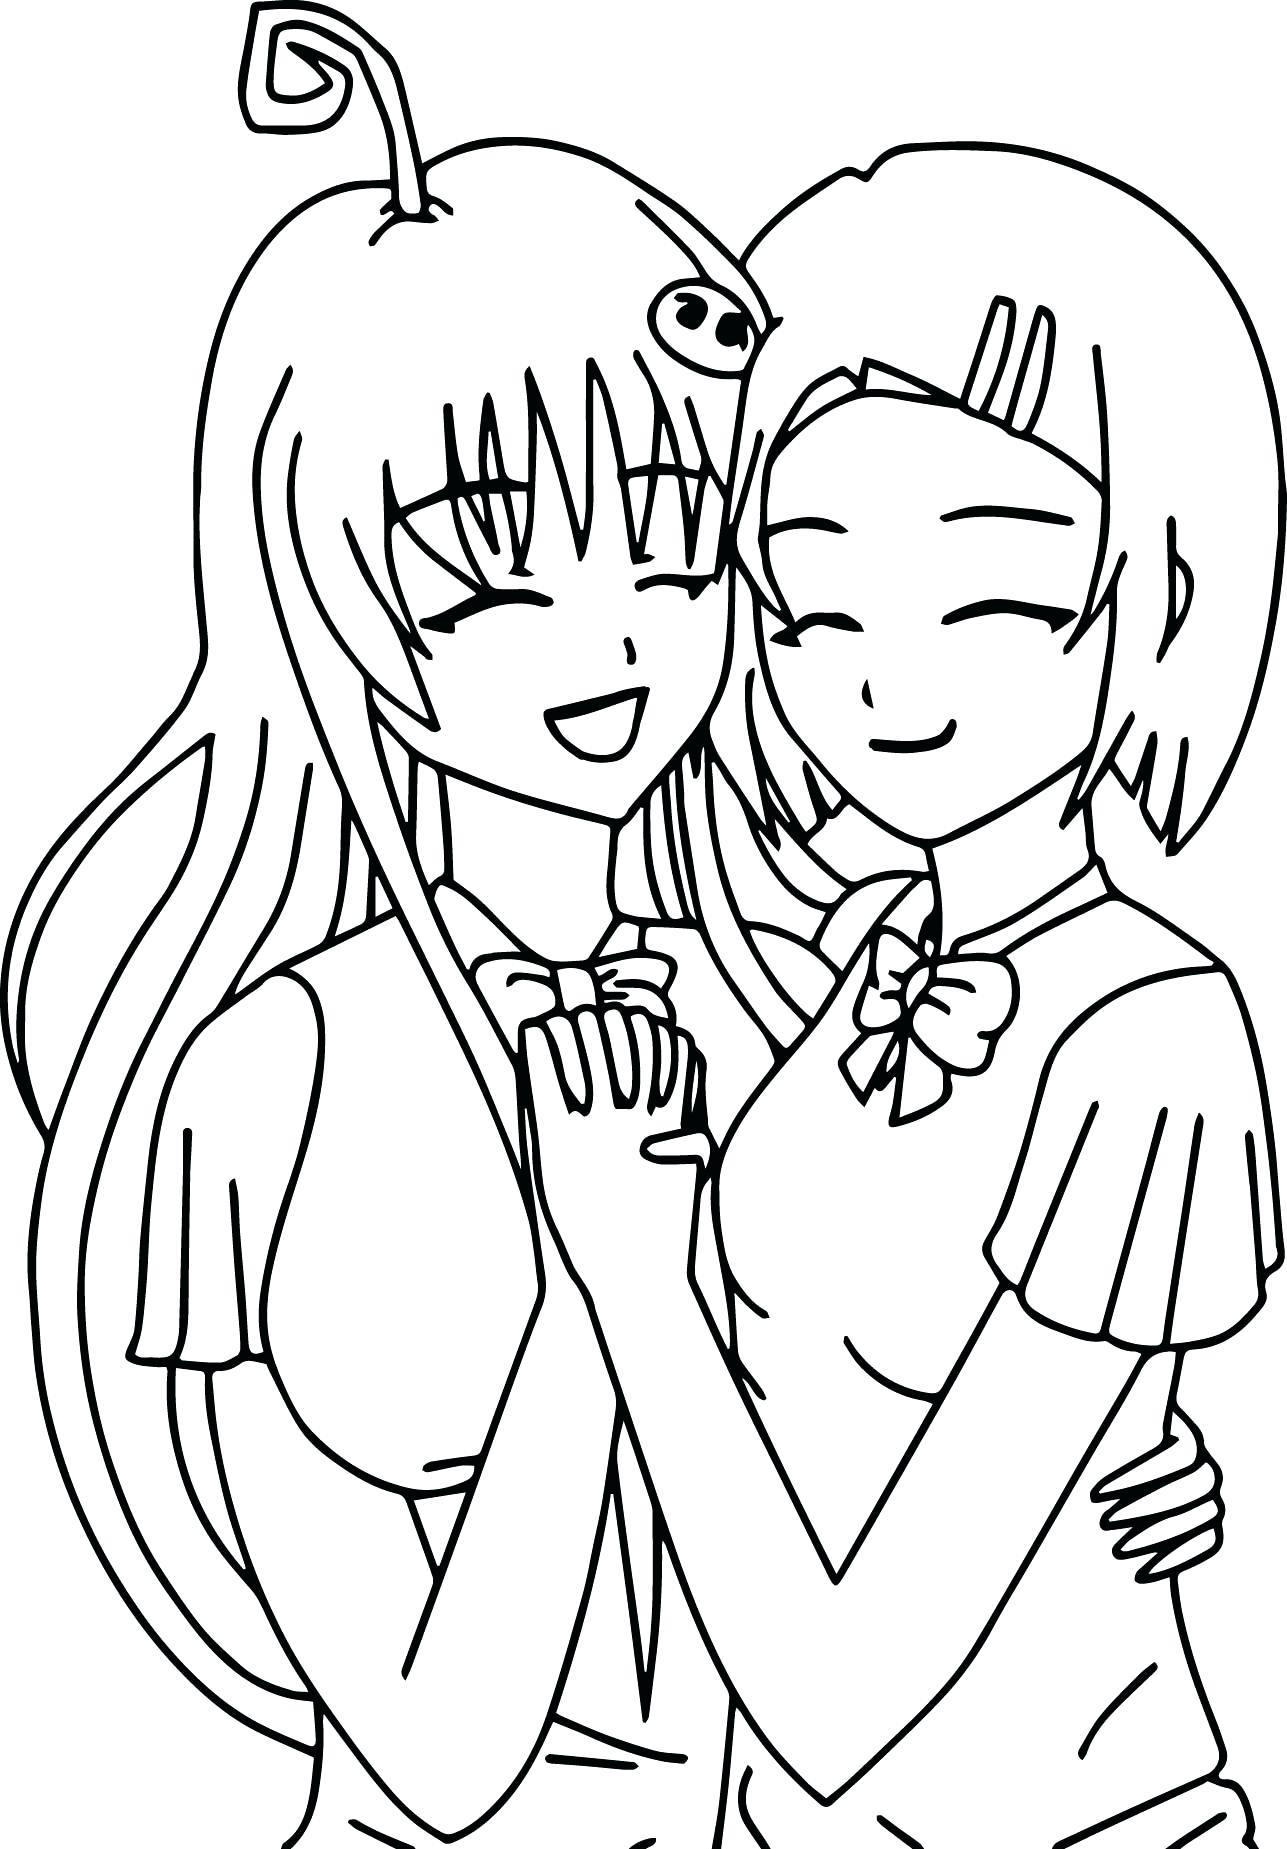 1287x1849 Best Friend Coloring Pages To Print